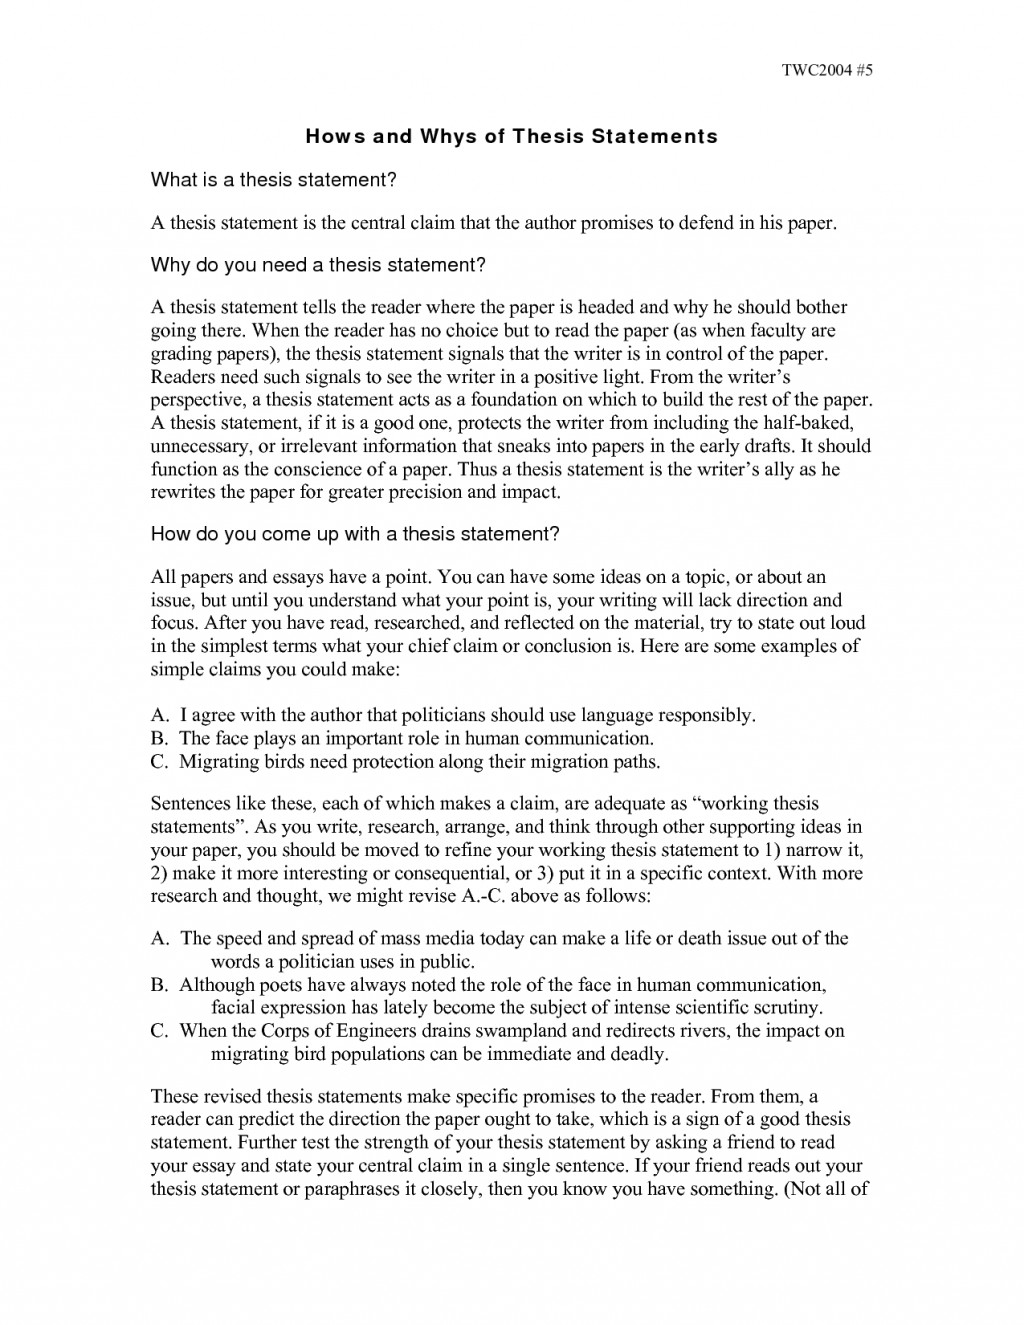 013 Thesis Statement Examples For Researchs Wzxdwuvs Global Warming Stunning Research Paper Large